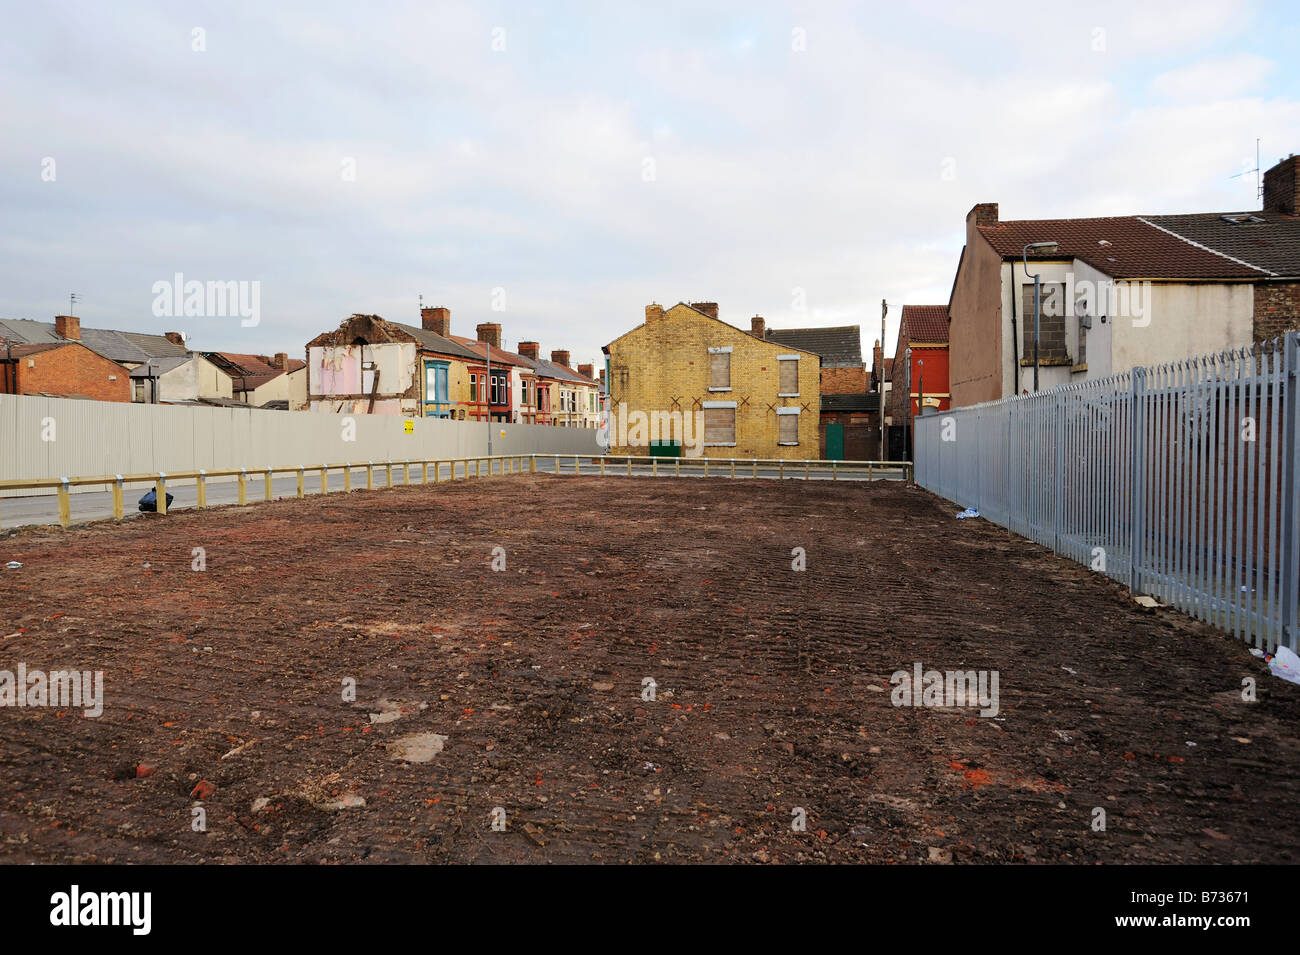 Plimsol Street in Edge Hill district of Liverpool after being compulsory purchased and partially demolished. - Stock Image